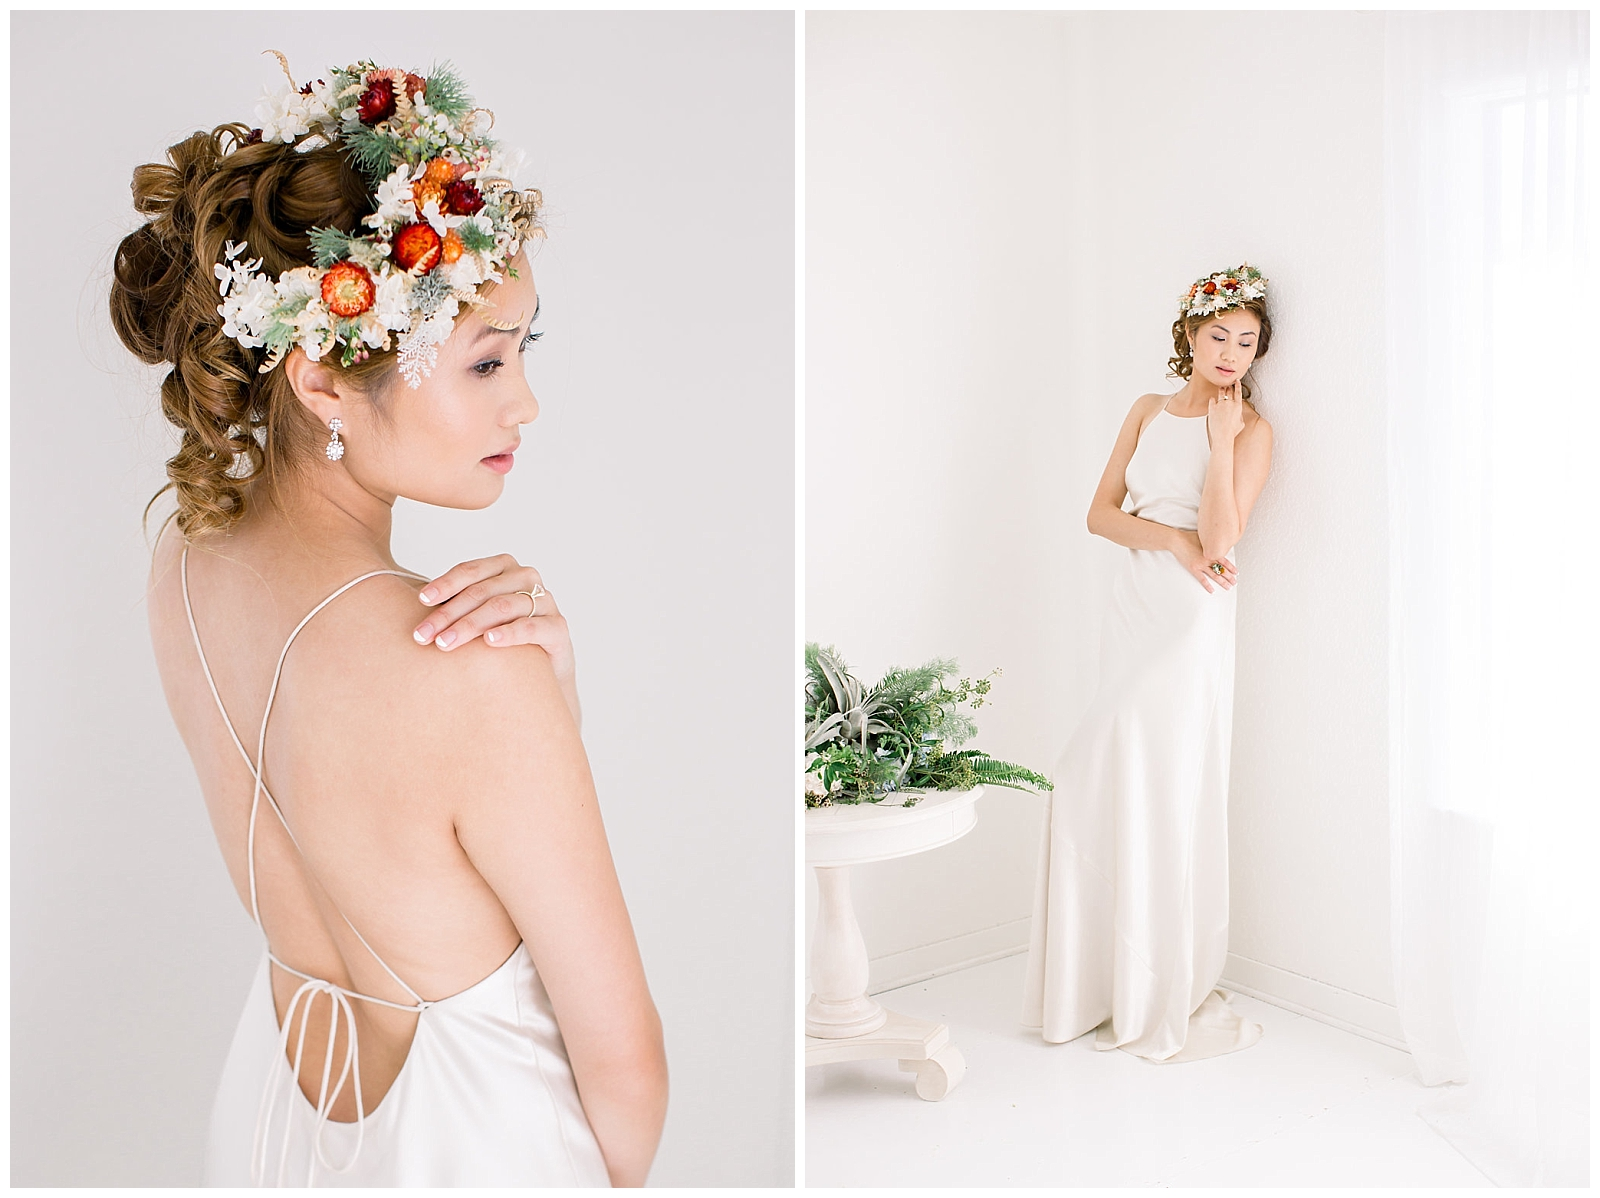 Living-Accessories-styled-shoot-de-joy-photography-epiphany-boutique-silk-gown.jpg